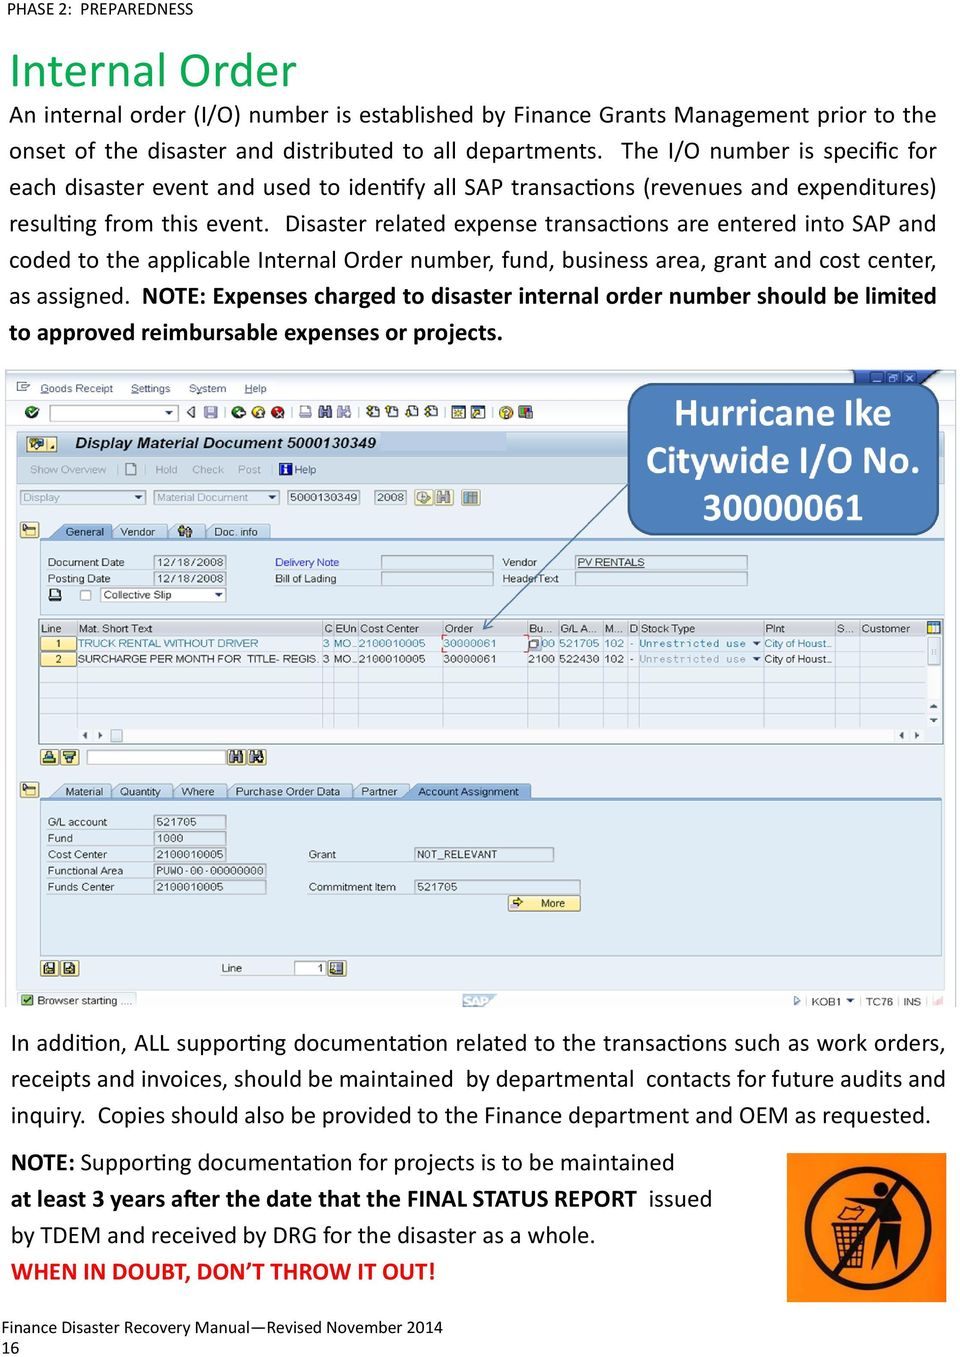 Disaster related expense transactions are entered into SAP and coded to the applicable Internal Order number, fund, business area, grant and cost center, as assigned.